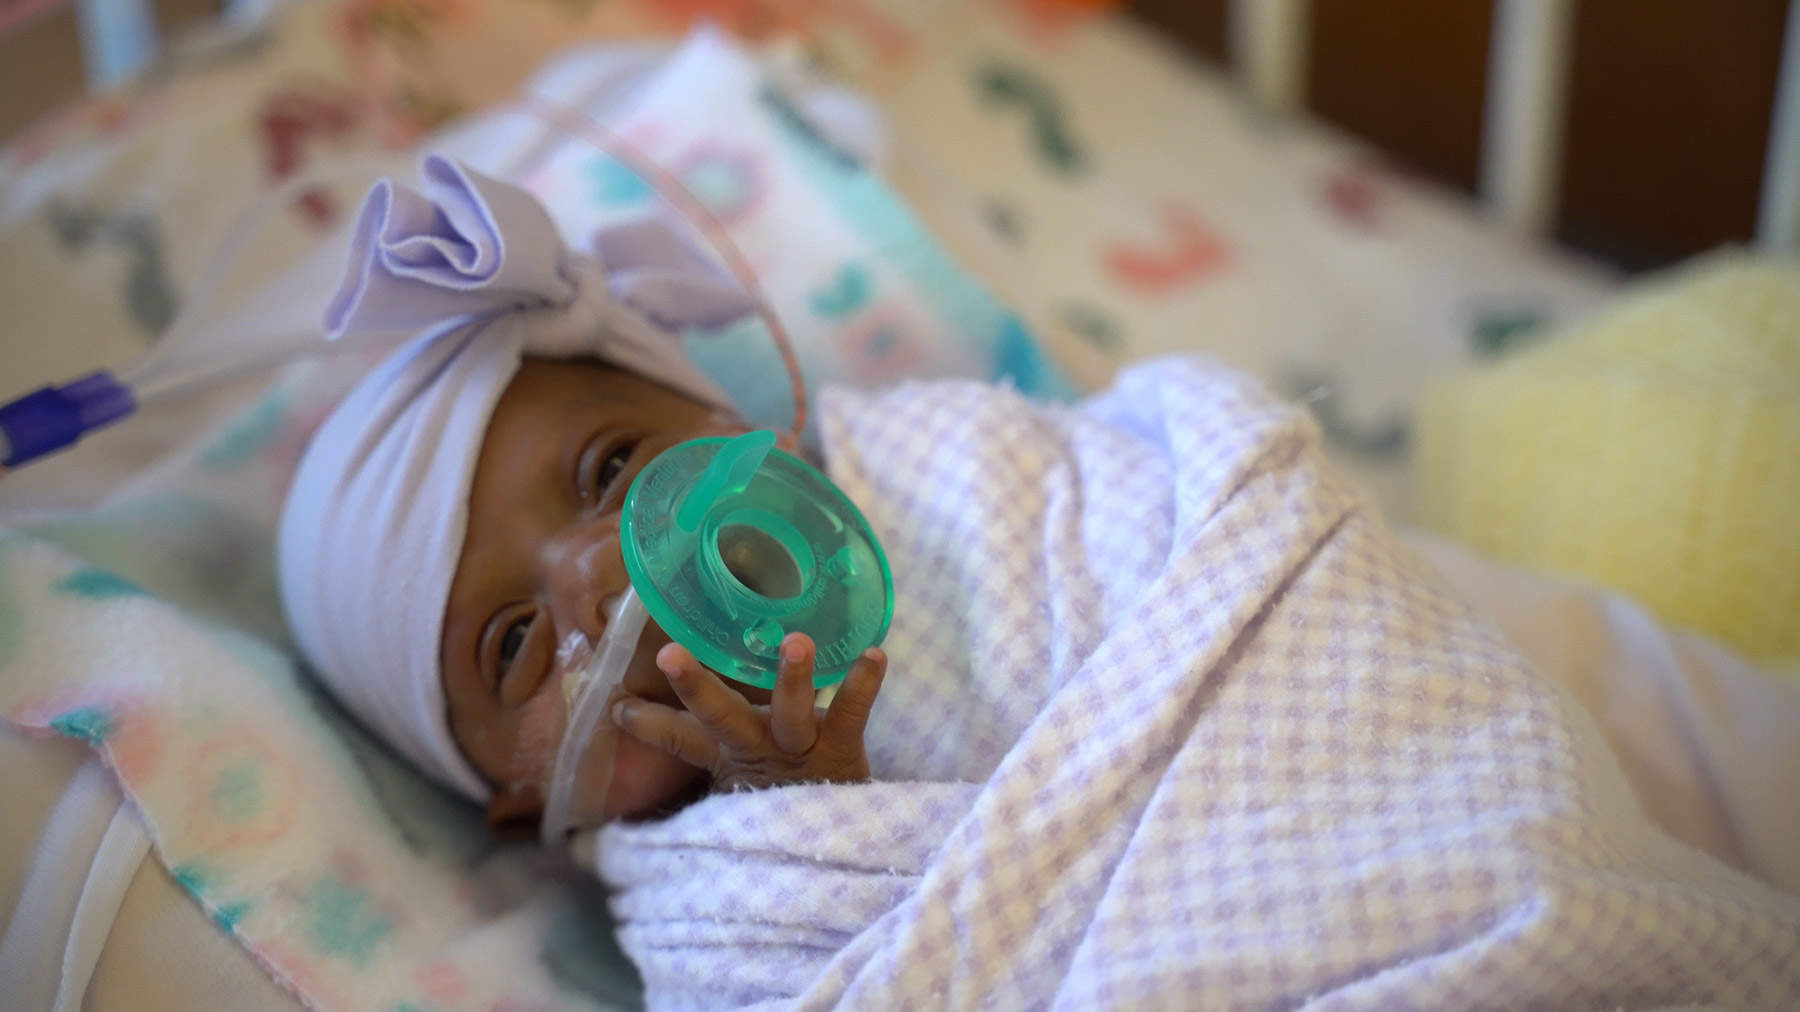 World's Smallest Surviving Baby Finally Goes Home from San Diego Hospital: 'She's a Miracle'